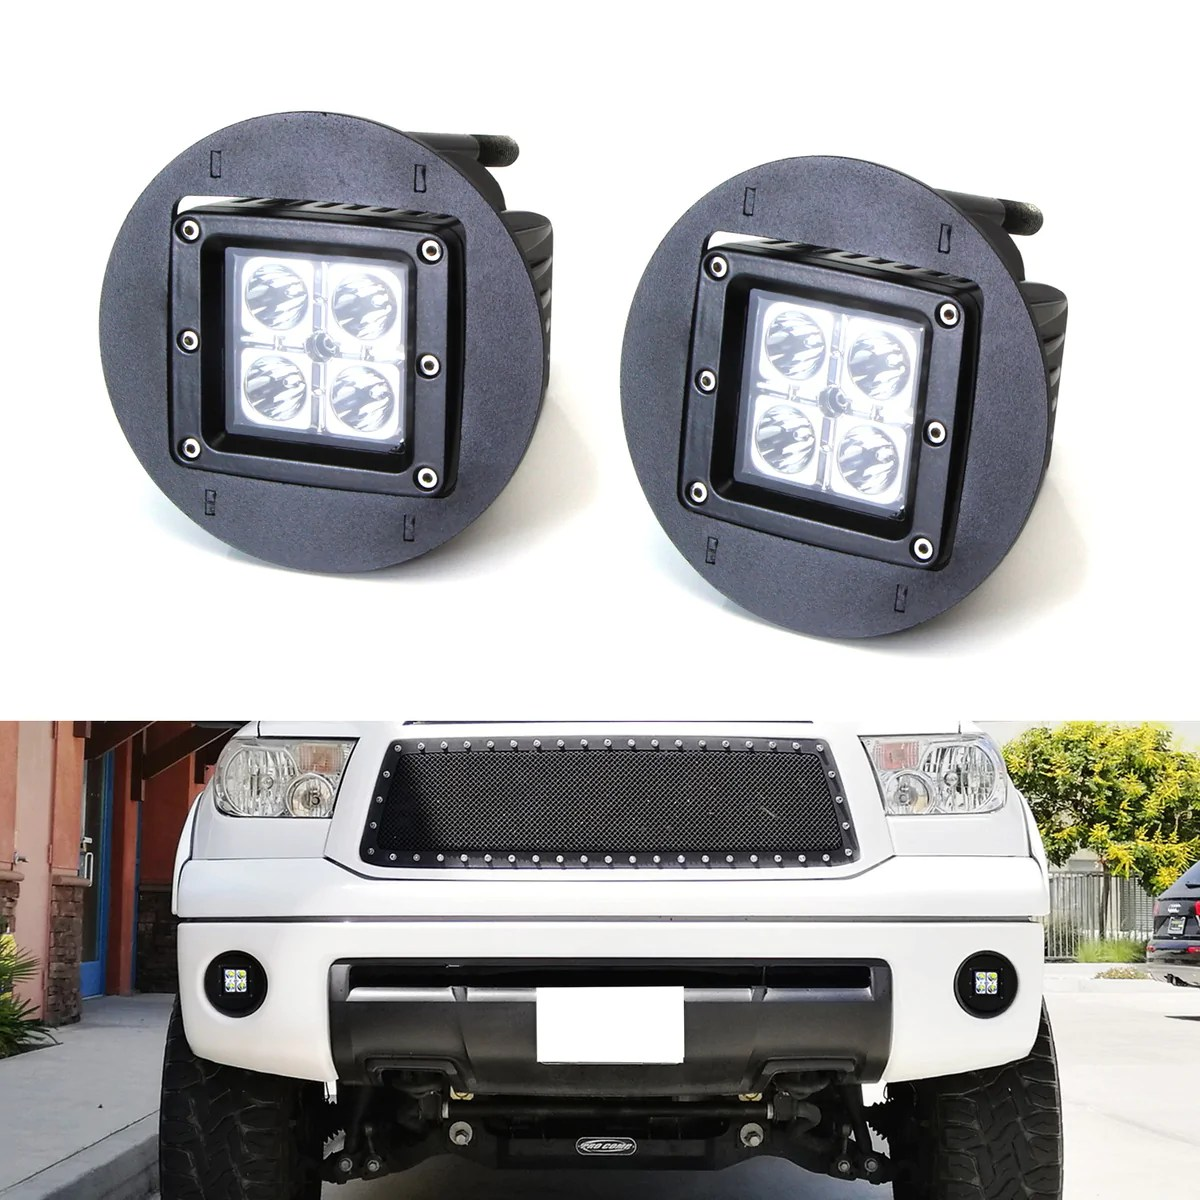 led pod light fog lamp kit for toyota tundra tacoma sequoia solara includes 2 20w high power cree led cubes foglight location mounting brackets  [ 1200 x 1200 Pixel ]